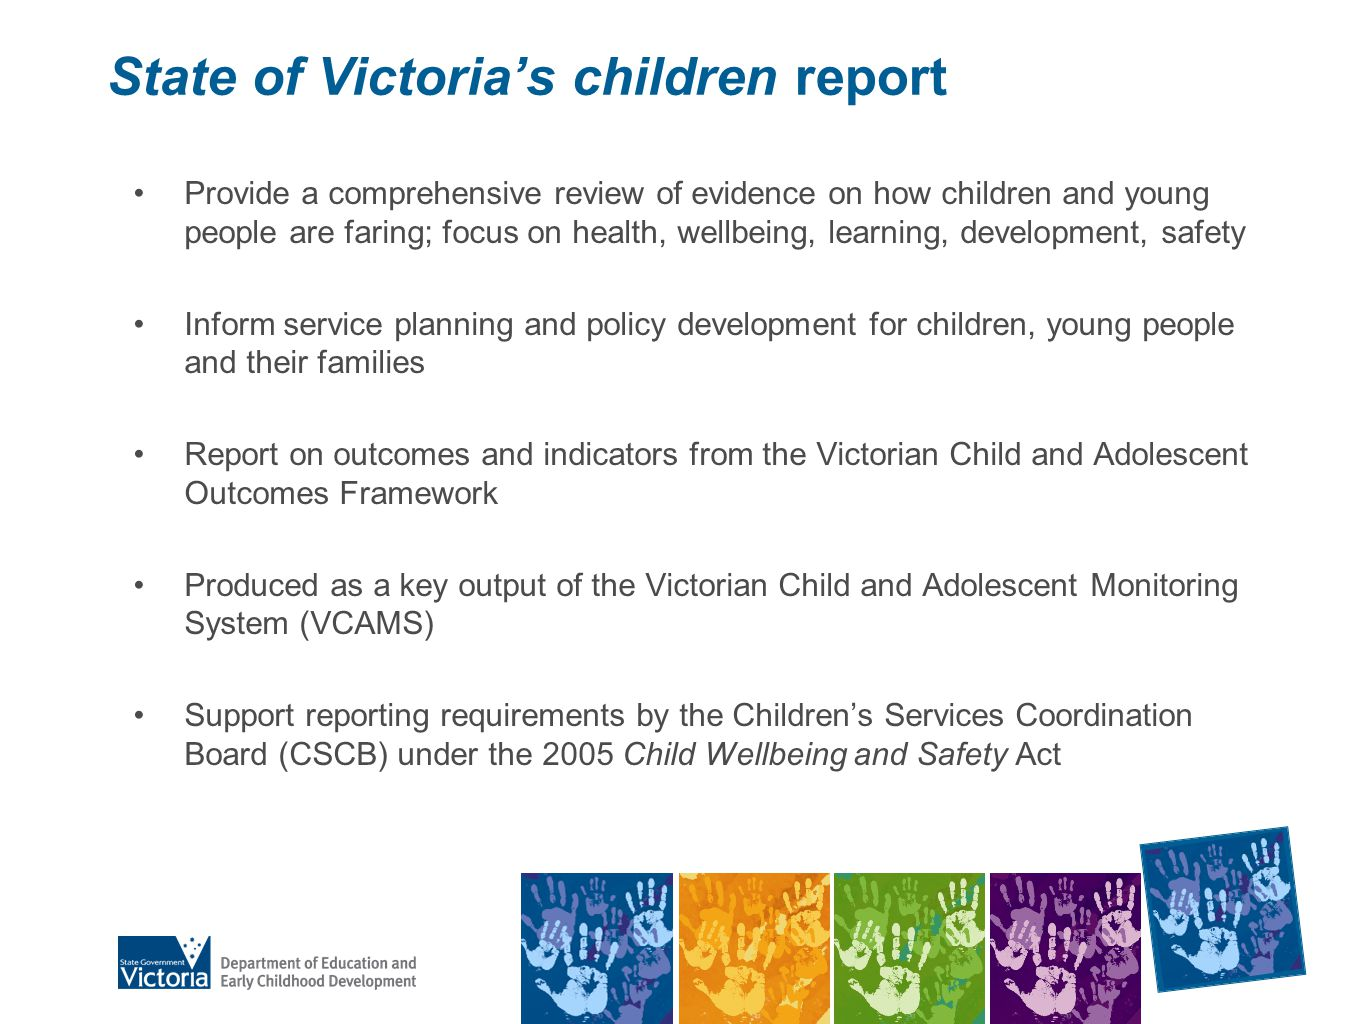 State of Victoria's children report Provide a comprehensive review of evidence on how children and young people are faring; focus on health, wellbeing, learning, development, safety Inform service planning and policy development for children, young people and their families Report on outcomes and indicators from the Victorian Child and Adolescent Outcomes Framework Produced as a key output of the Victorian Child and Adolescent Monitoring System (VCAMS) Support reporting requirements by the Children's Services Coordination Board (CSCB) under the 2005 Child Wellbeing and Safety Act